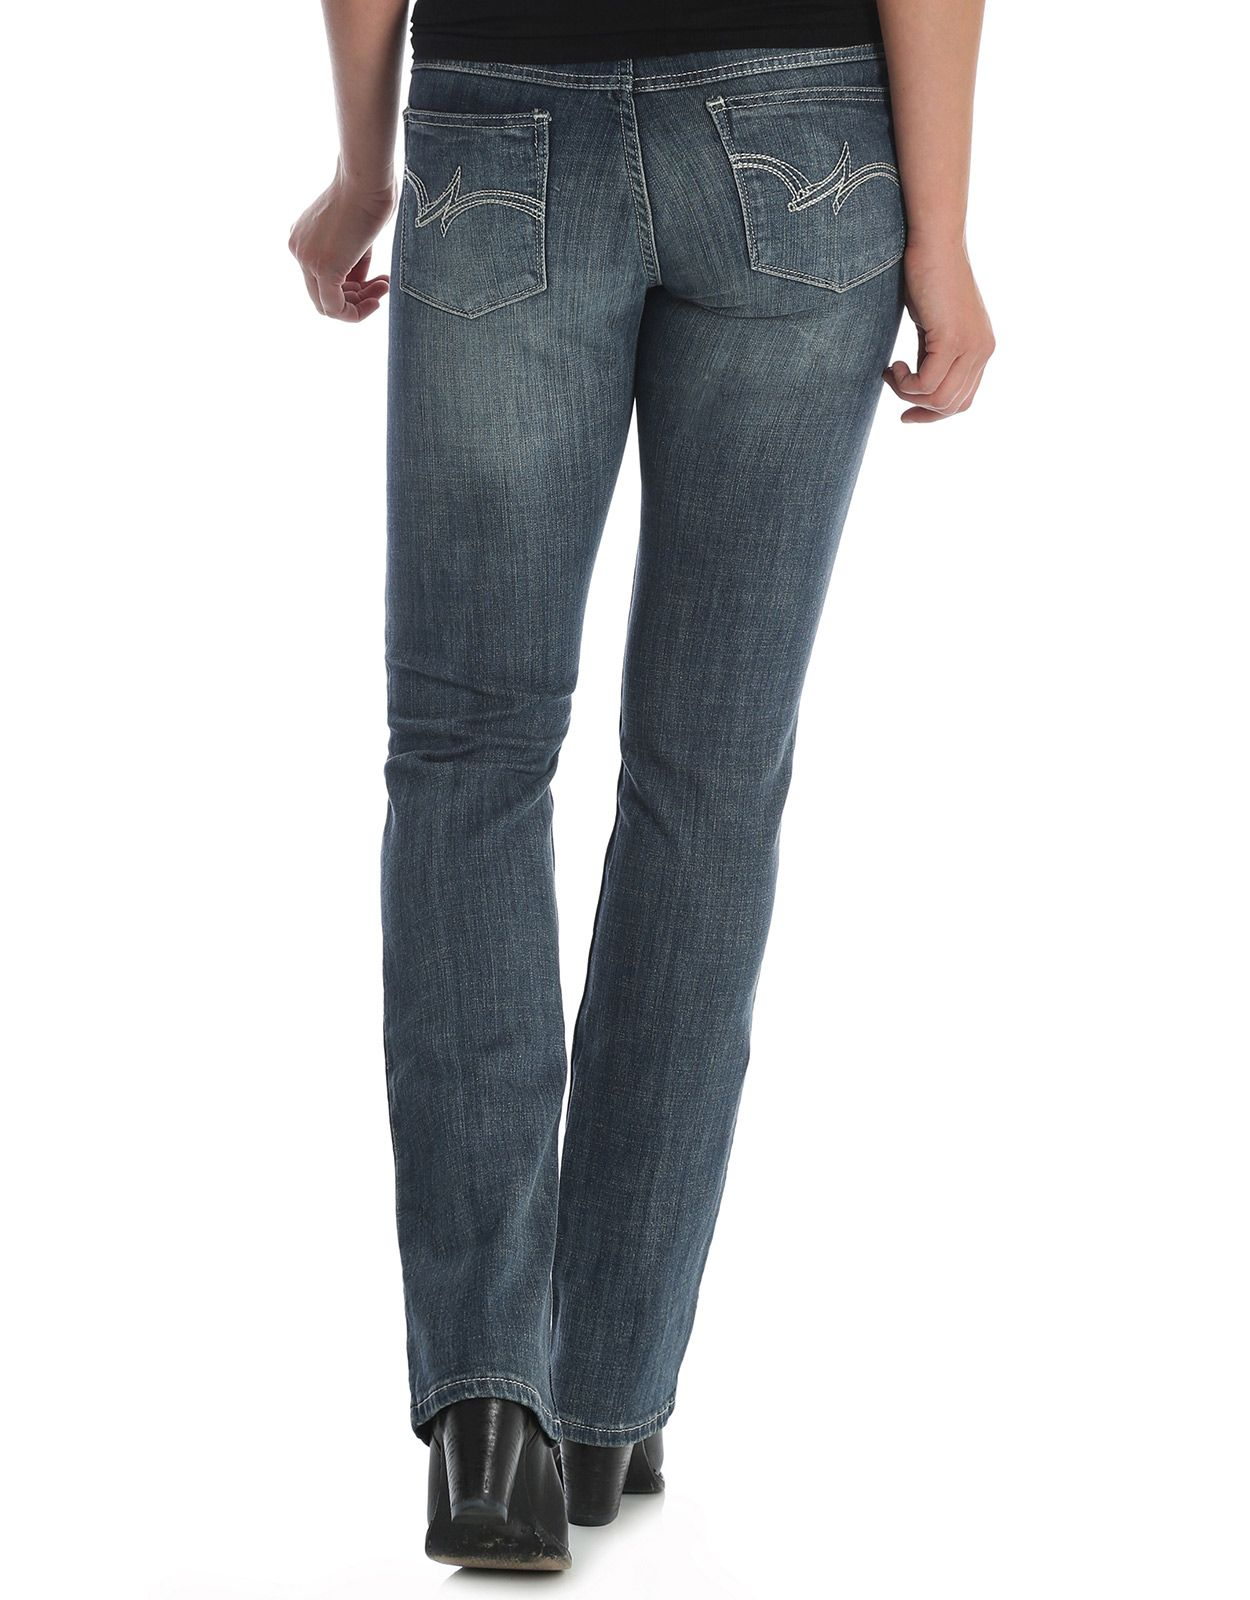 Wrangler Women's Essential Mid Rise Regular Fit Straight Leg Jean - MS Wash